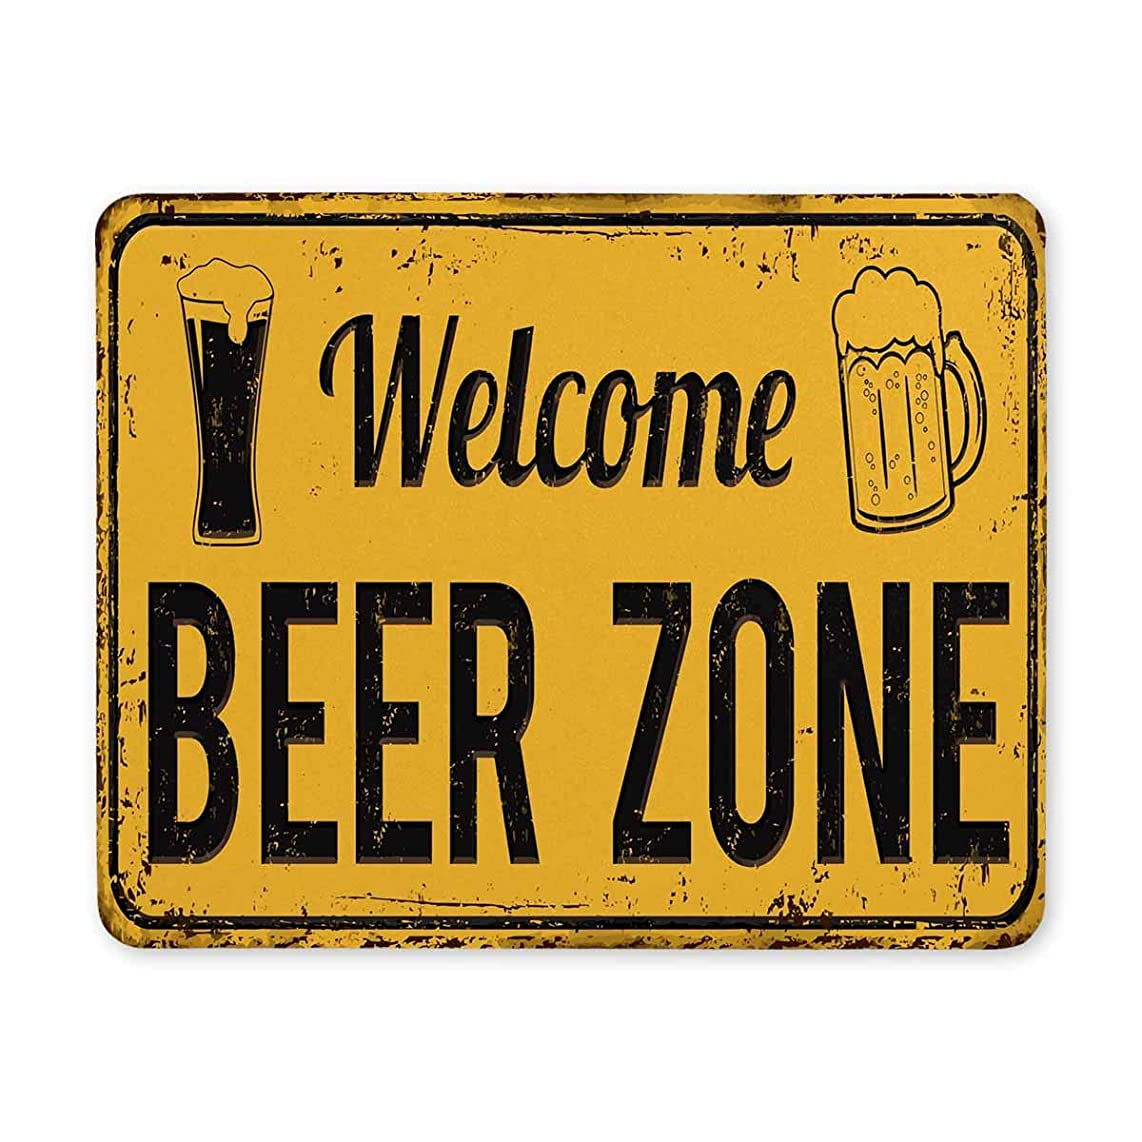 InterestPrint Funny Vintage Rusty Metal Sign Welcome Beer Zone Rectangle Non Slip Rubber Comfortable Computer Mouse Pad Gaming Mousepad Mat with Designs for Office Home Woman Man Employee Boss Work